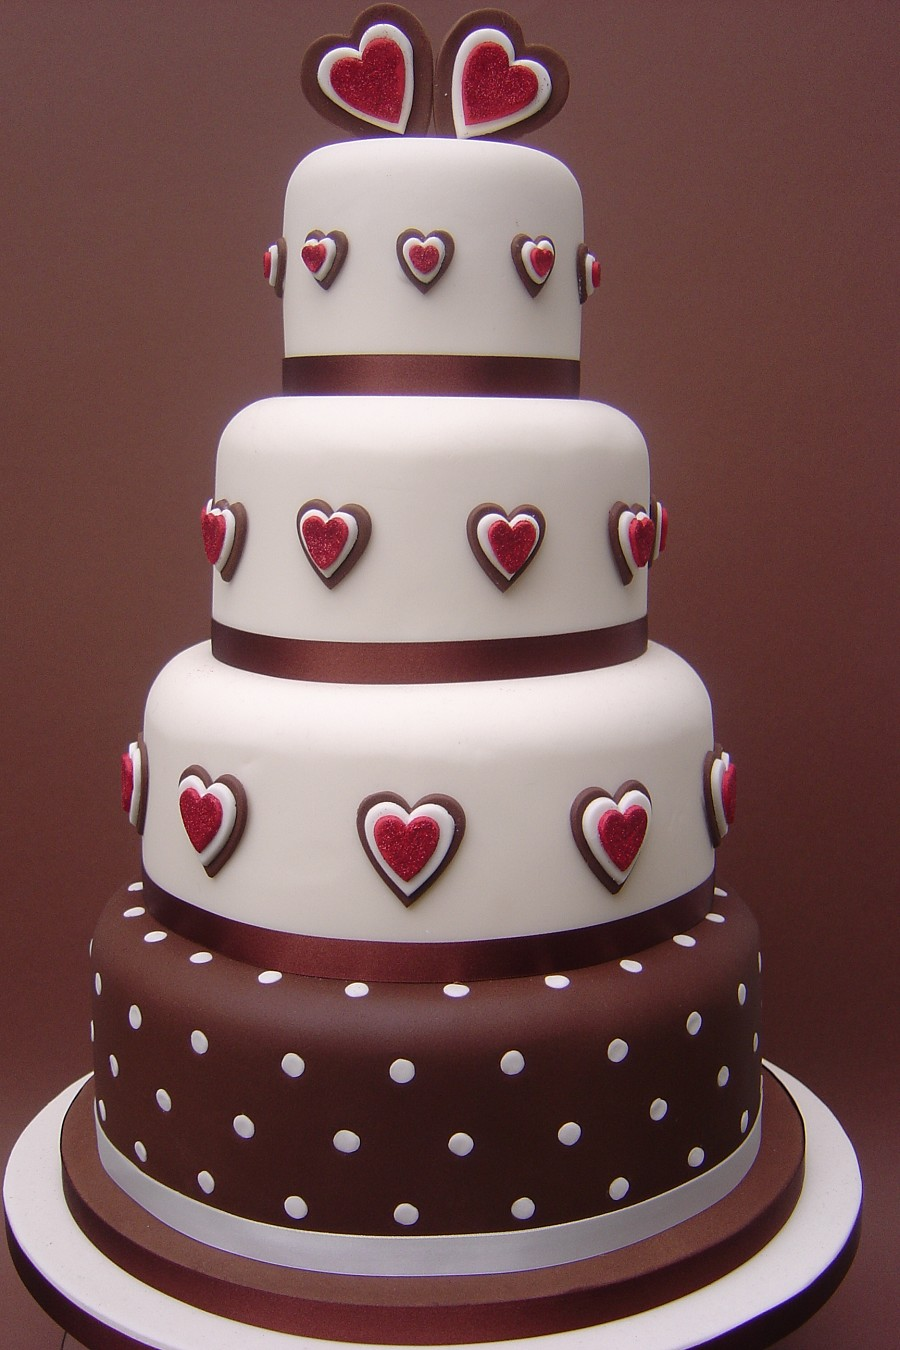 Anniversary Chocolate Cake Design : 50th Wedding Anniversary Cake Ideas